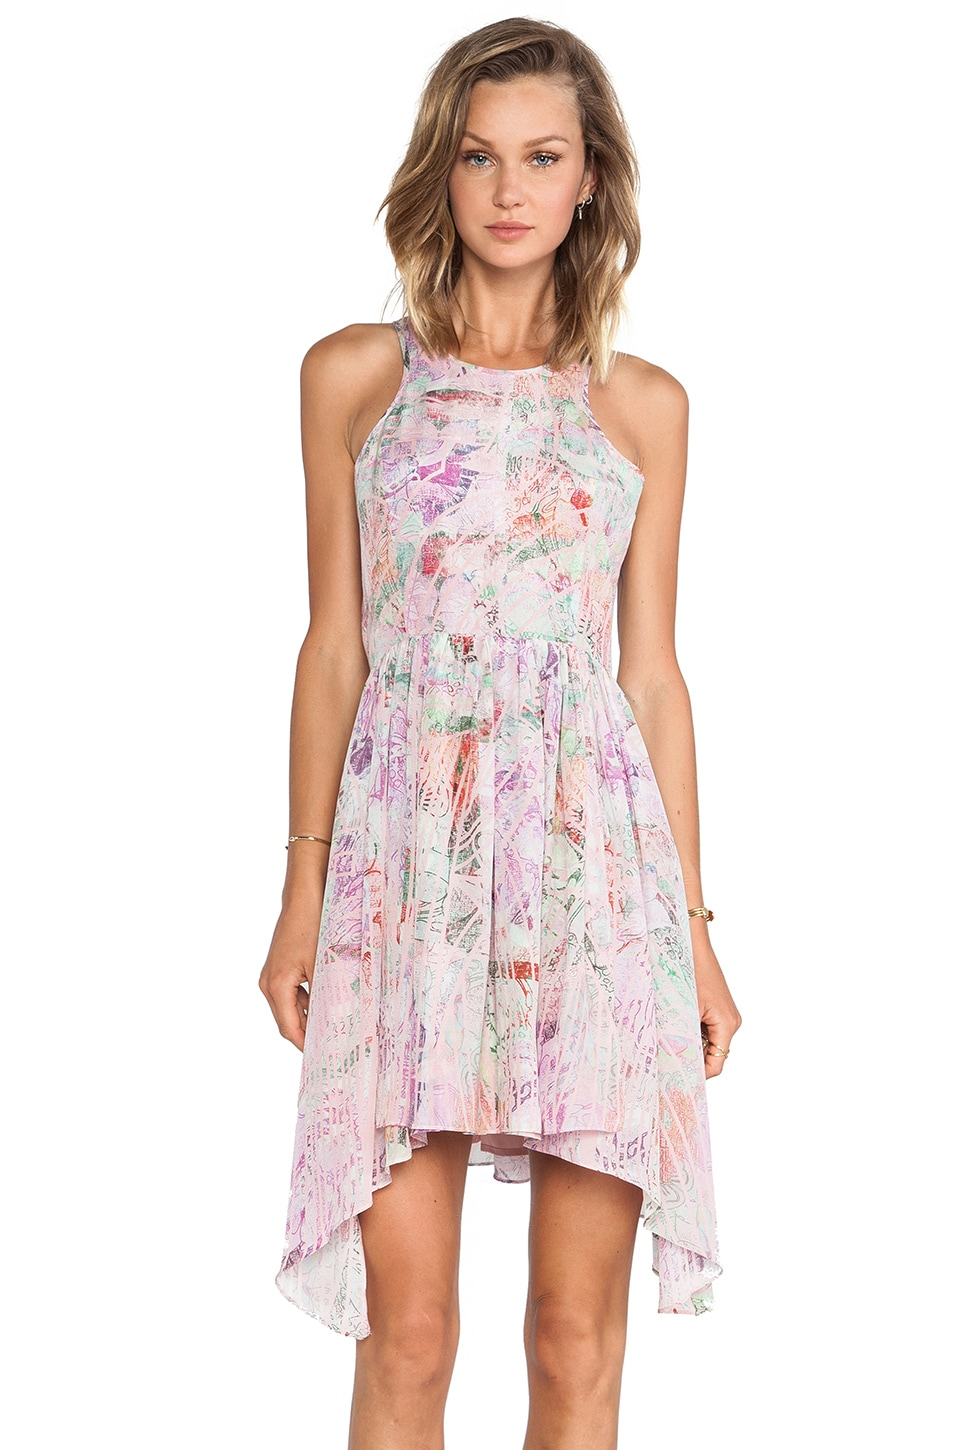 Talulah Moon Stars Dress in Pink Floral